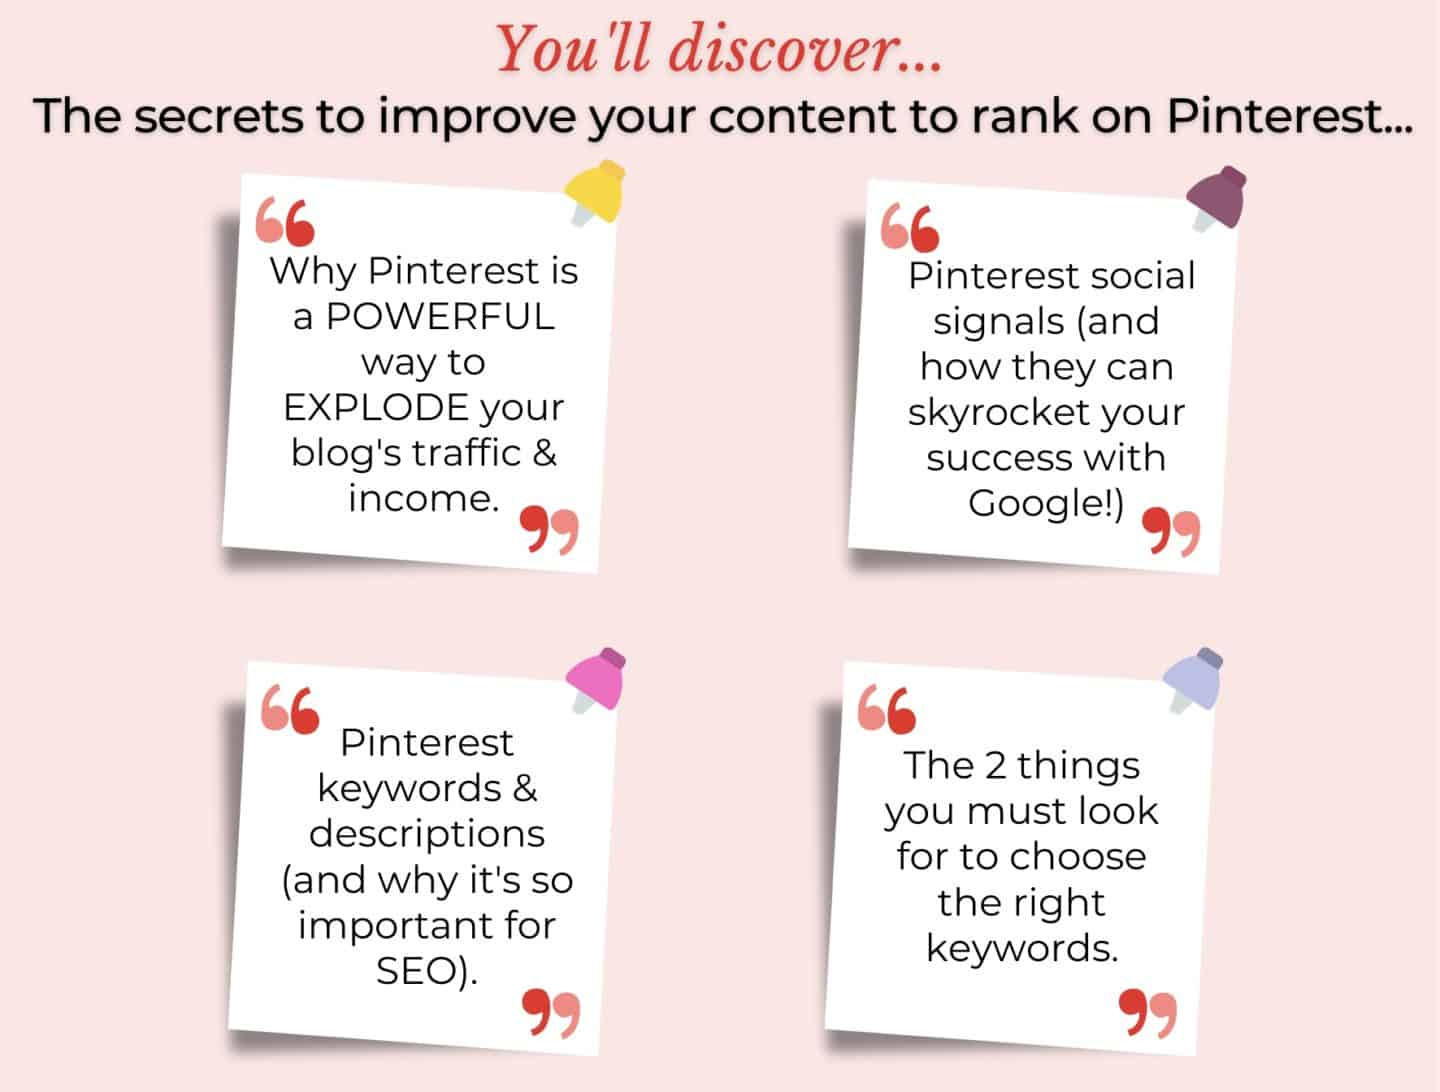 Discover The Secrets To Improve Your Content & Rank On Pinterest